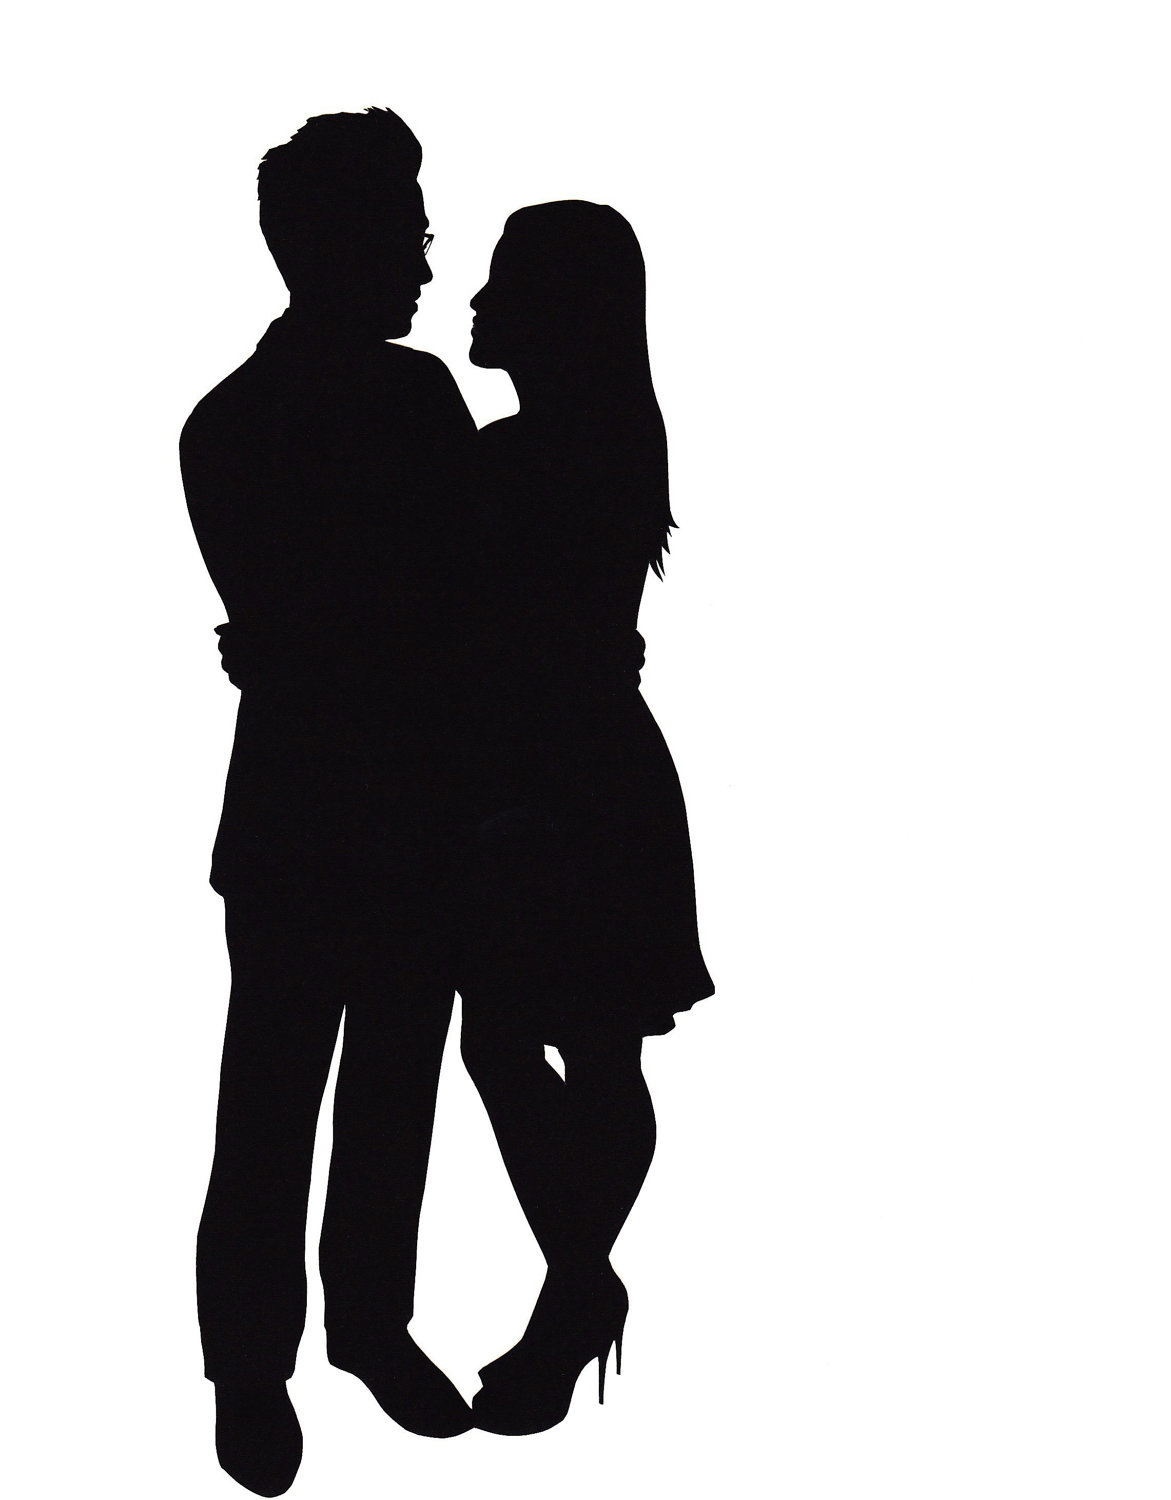 1171x1500 Silhouette Of Two People Kissing Frees That You Can Download Free